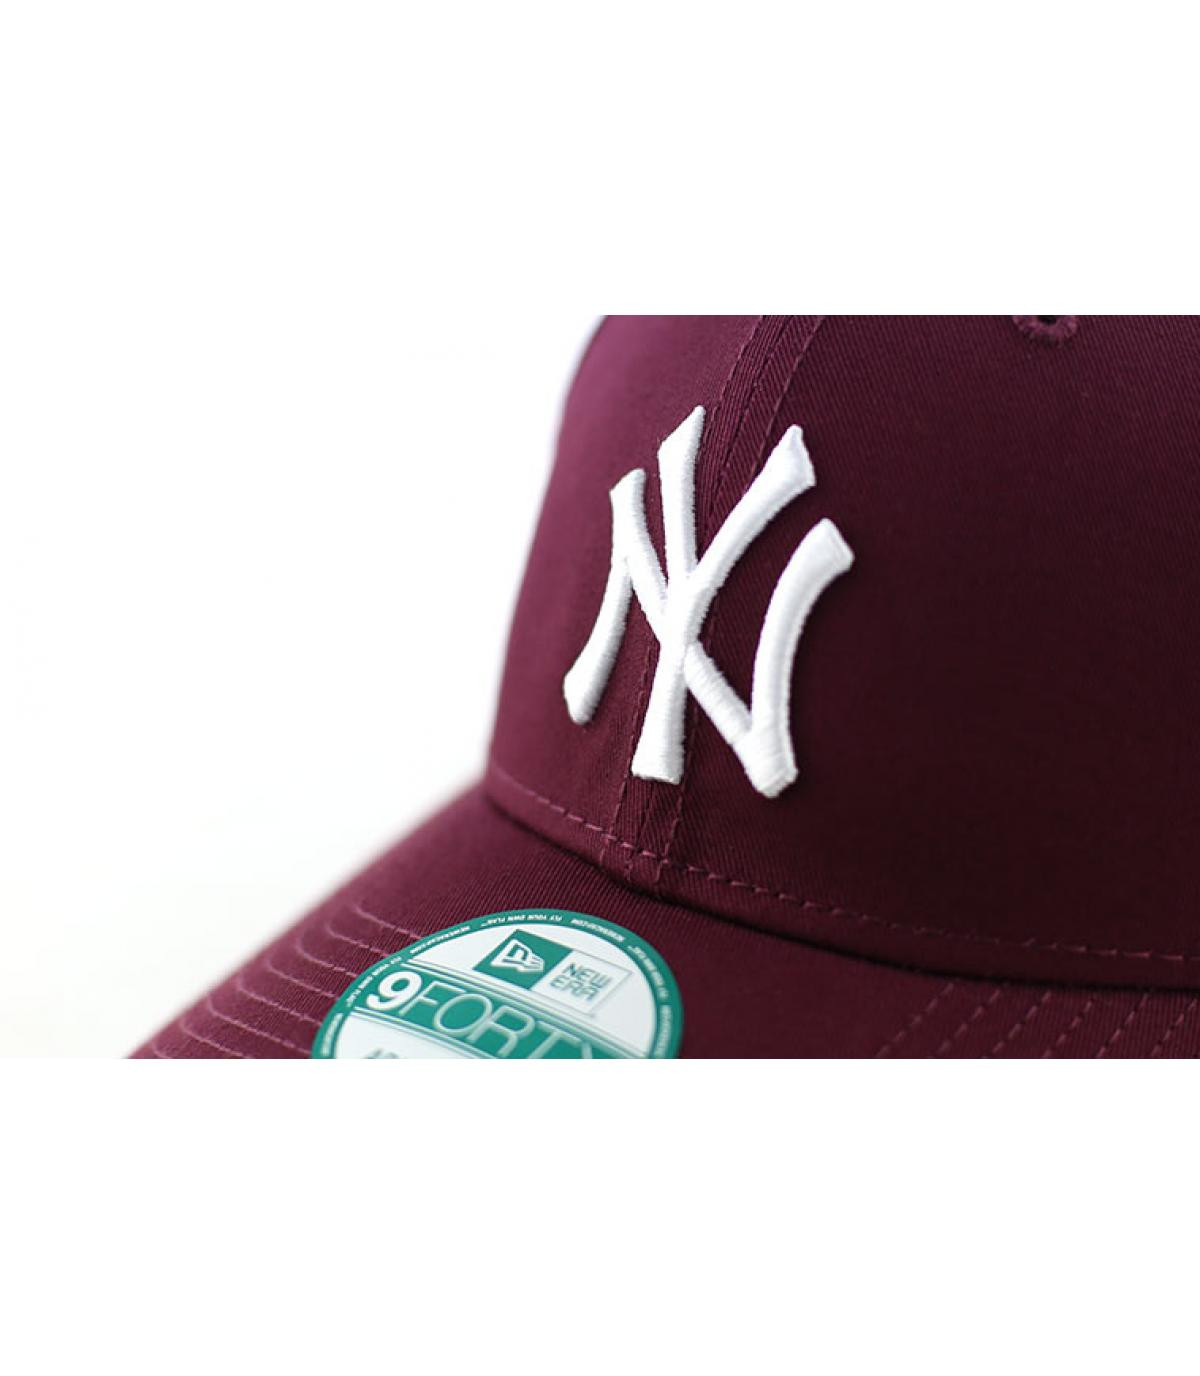 Details League essential Ny maroon - afbeeling 3